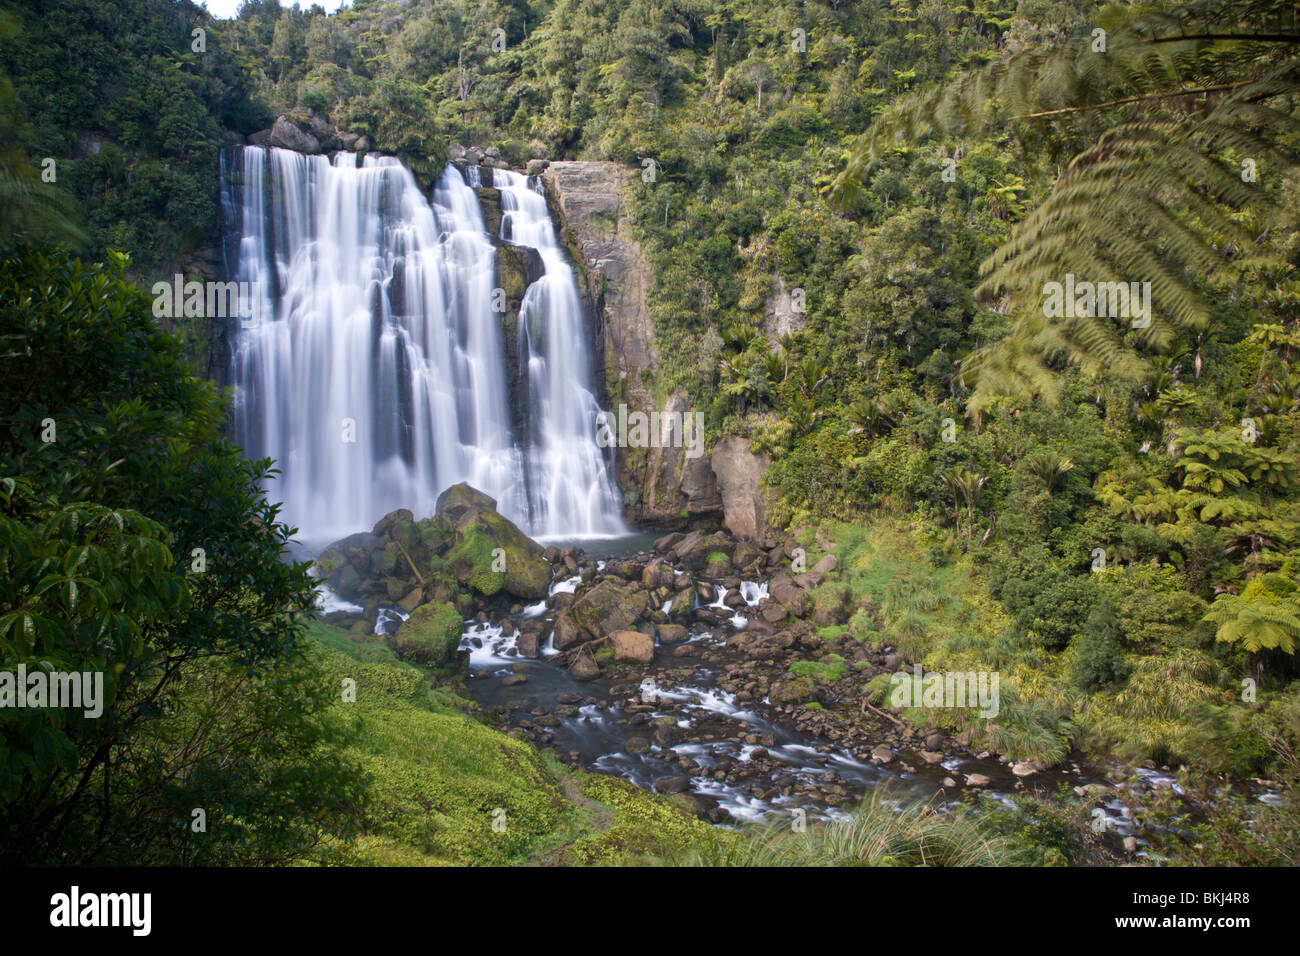 Marakopa Falls North Island New Zealand - Stock Image